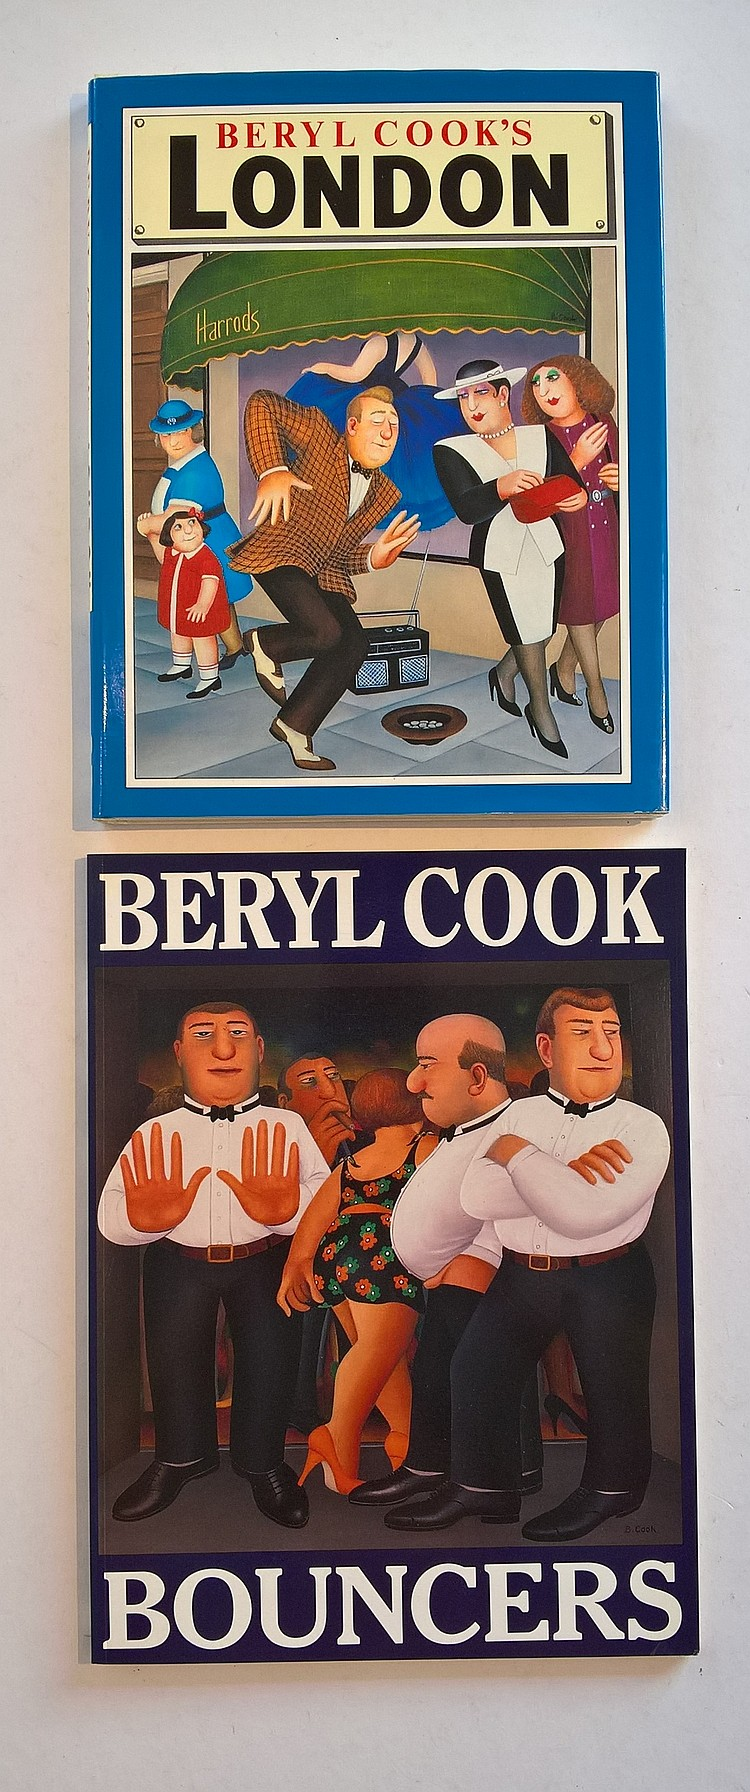 Beryl Cook Books (2) - Beryl Cook Bouncers by Vict